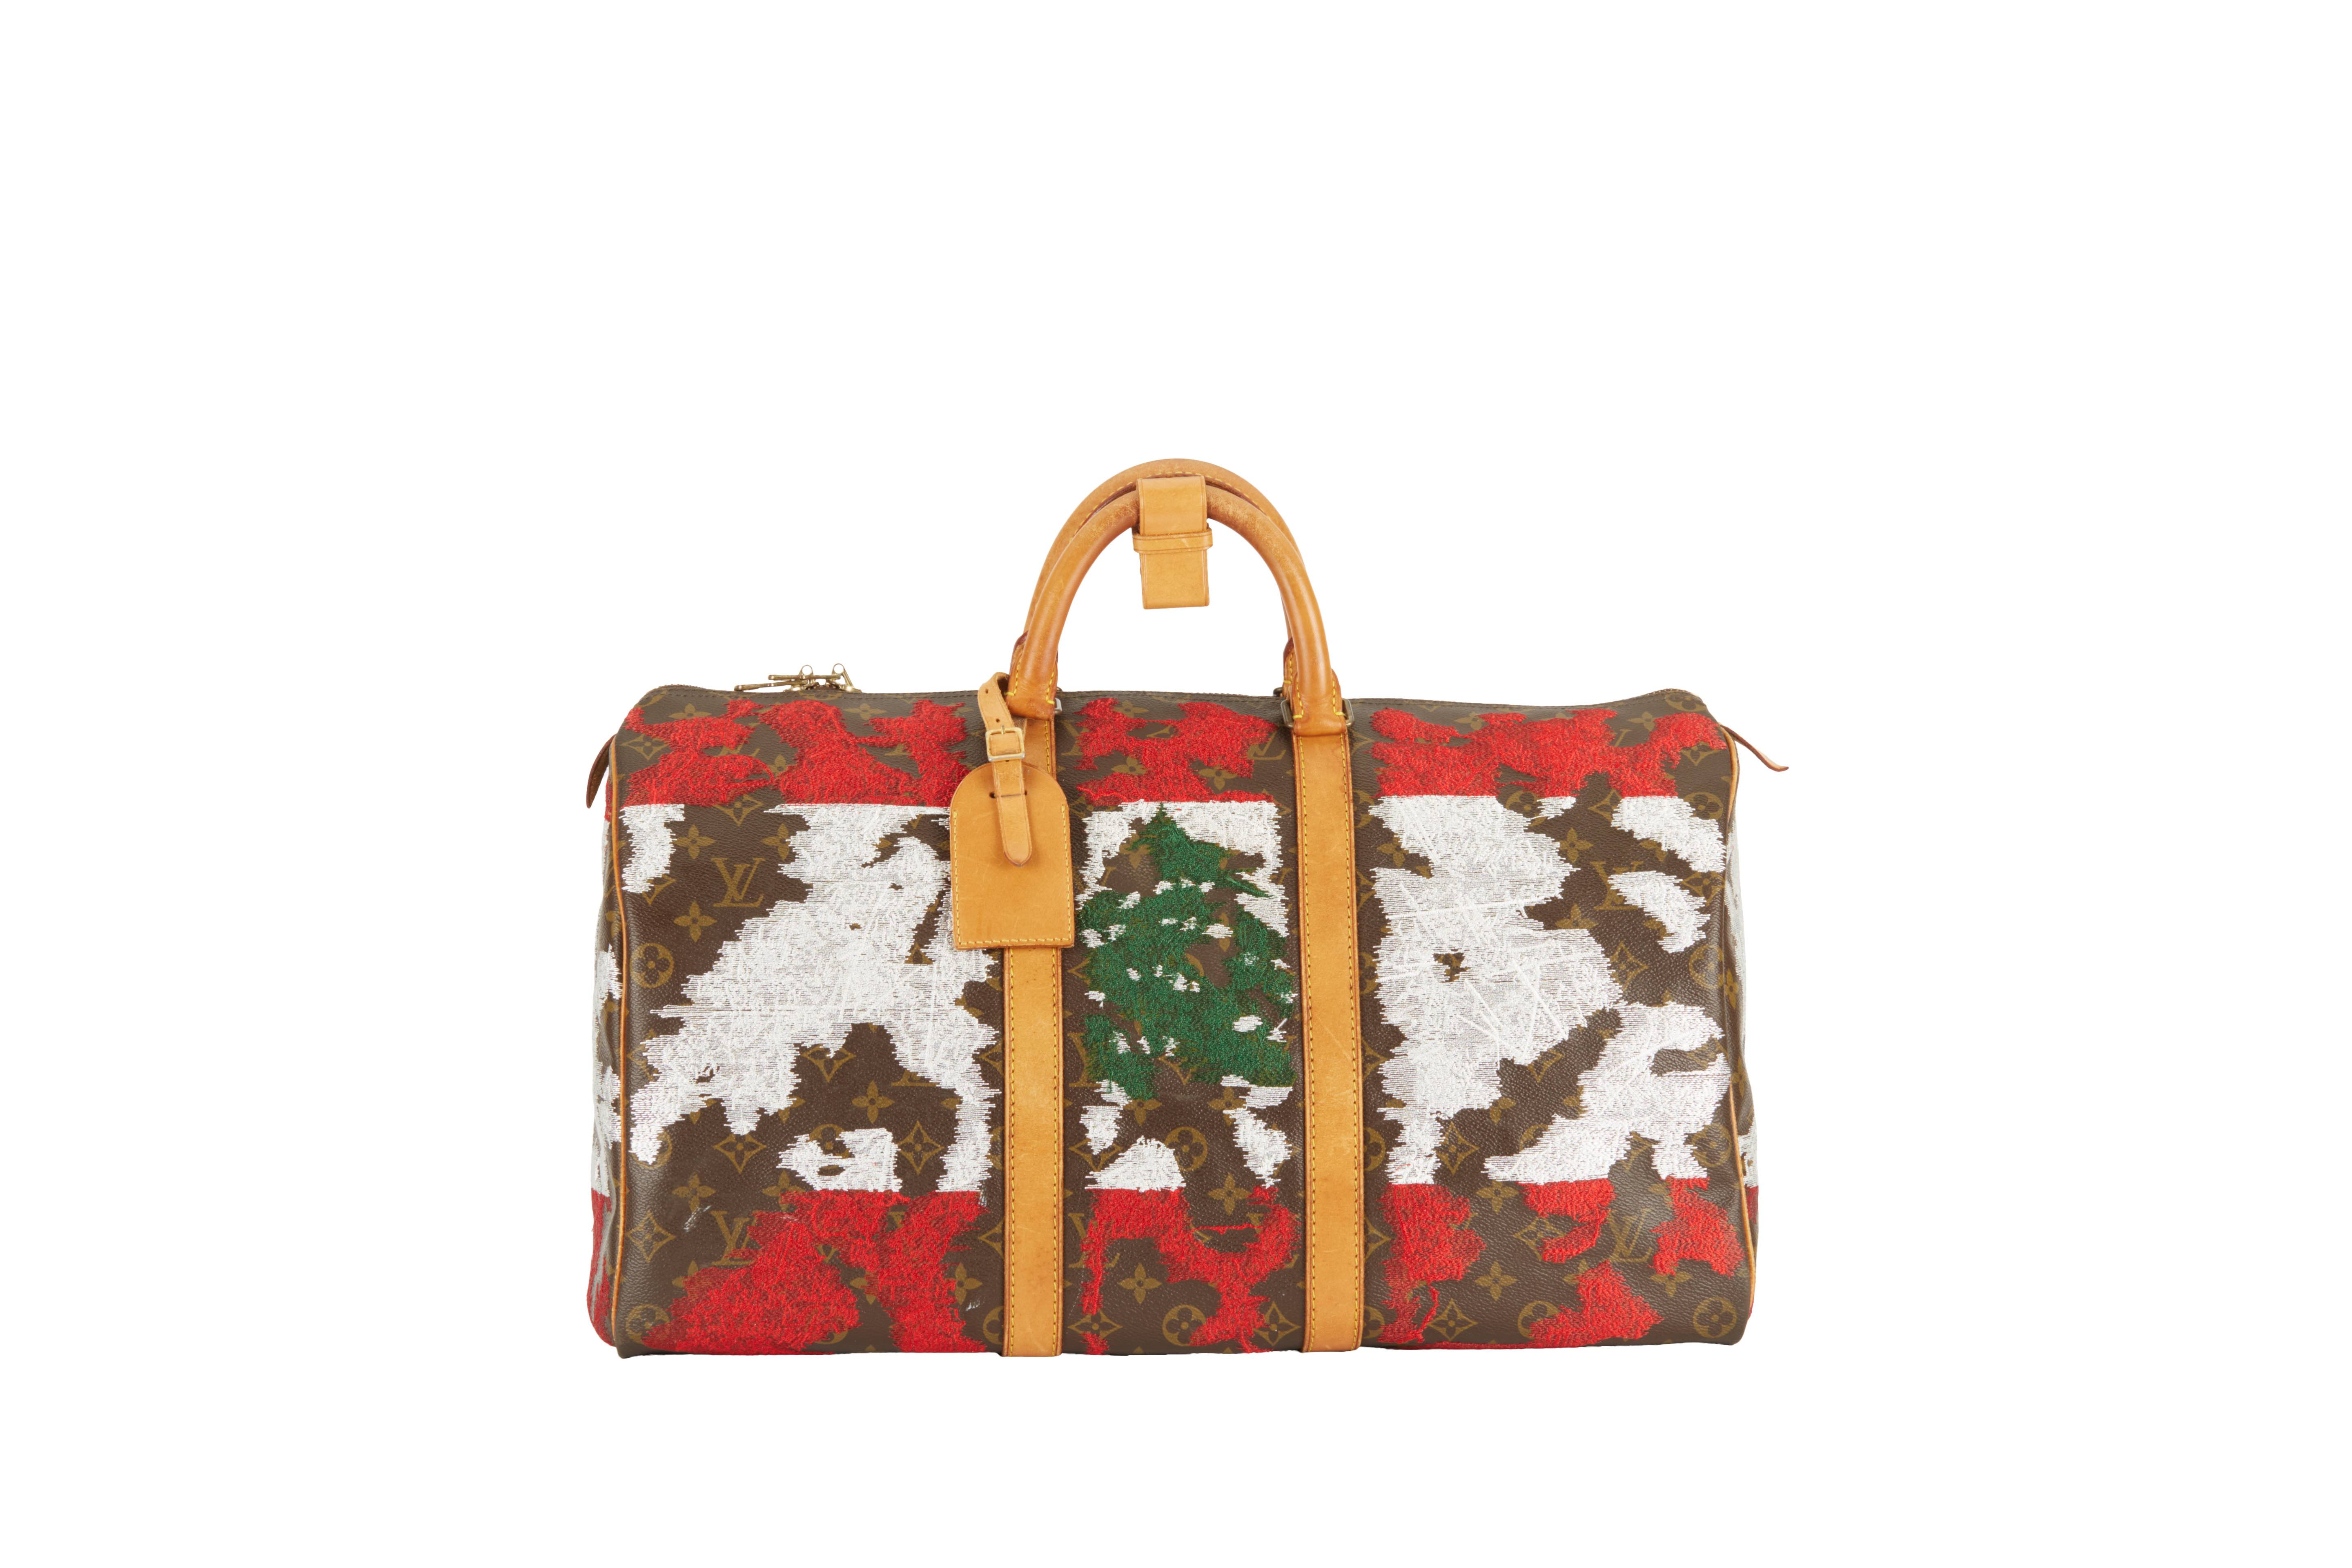 34582d81245c The Vintage Louis Vuitton Keepall X Jay Ahr Embroidery Collection ...